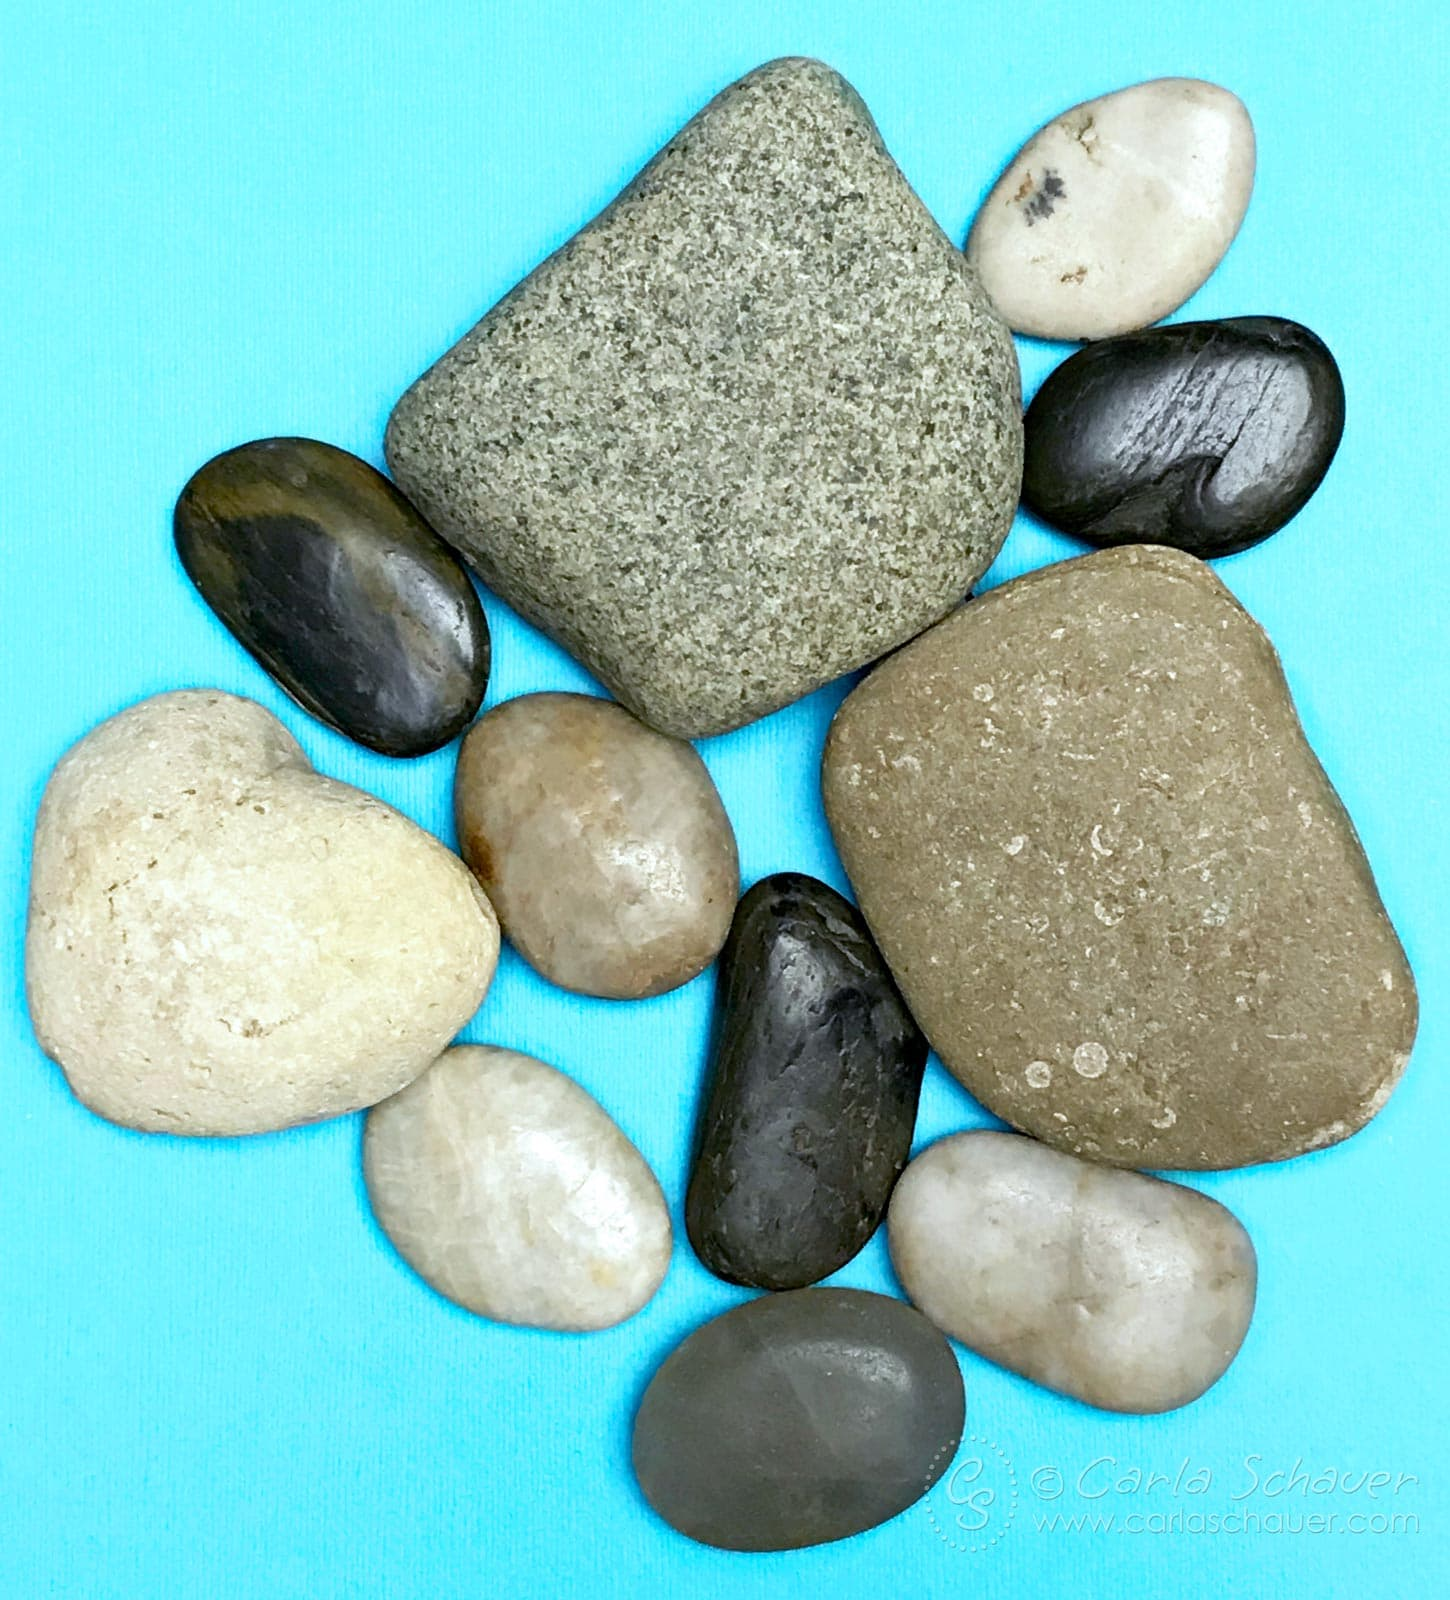 Find our where to find rocks for painting. | he ultimate guide to the best supplies for painting rocks. Paints, pens, tools, sealers, and more. | Click for the entire guide at carlaschauer.com #easypaintedrocks #paintedrockideas #paintedrocks #rockpainting #decoratedrocks #quickcrafts #teencrafts #tweencrafts #rockpaintingsupplies #paintingsupplies #craftsupplies